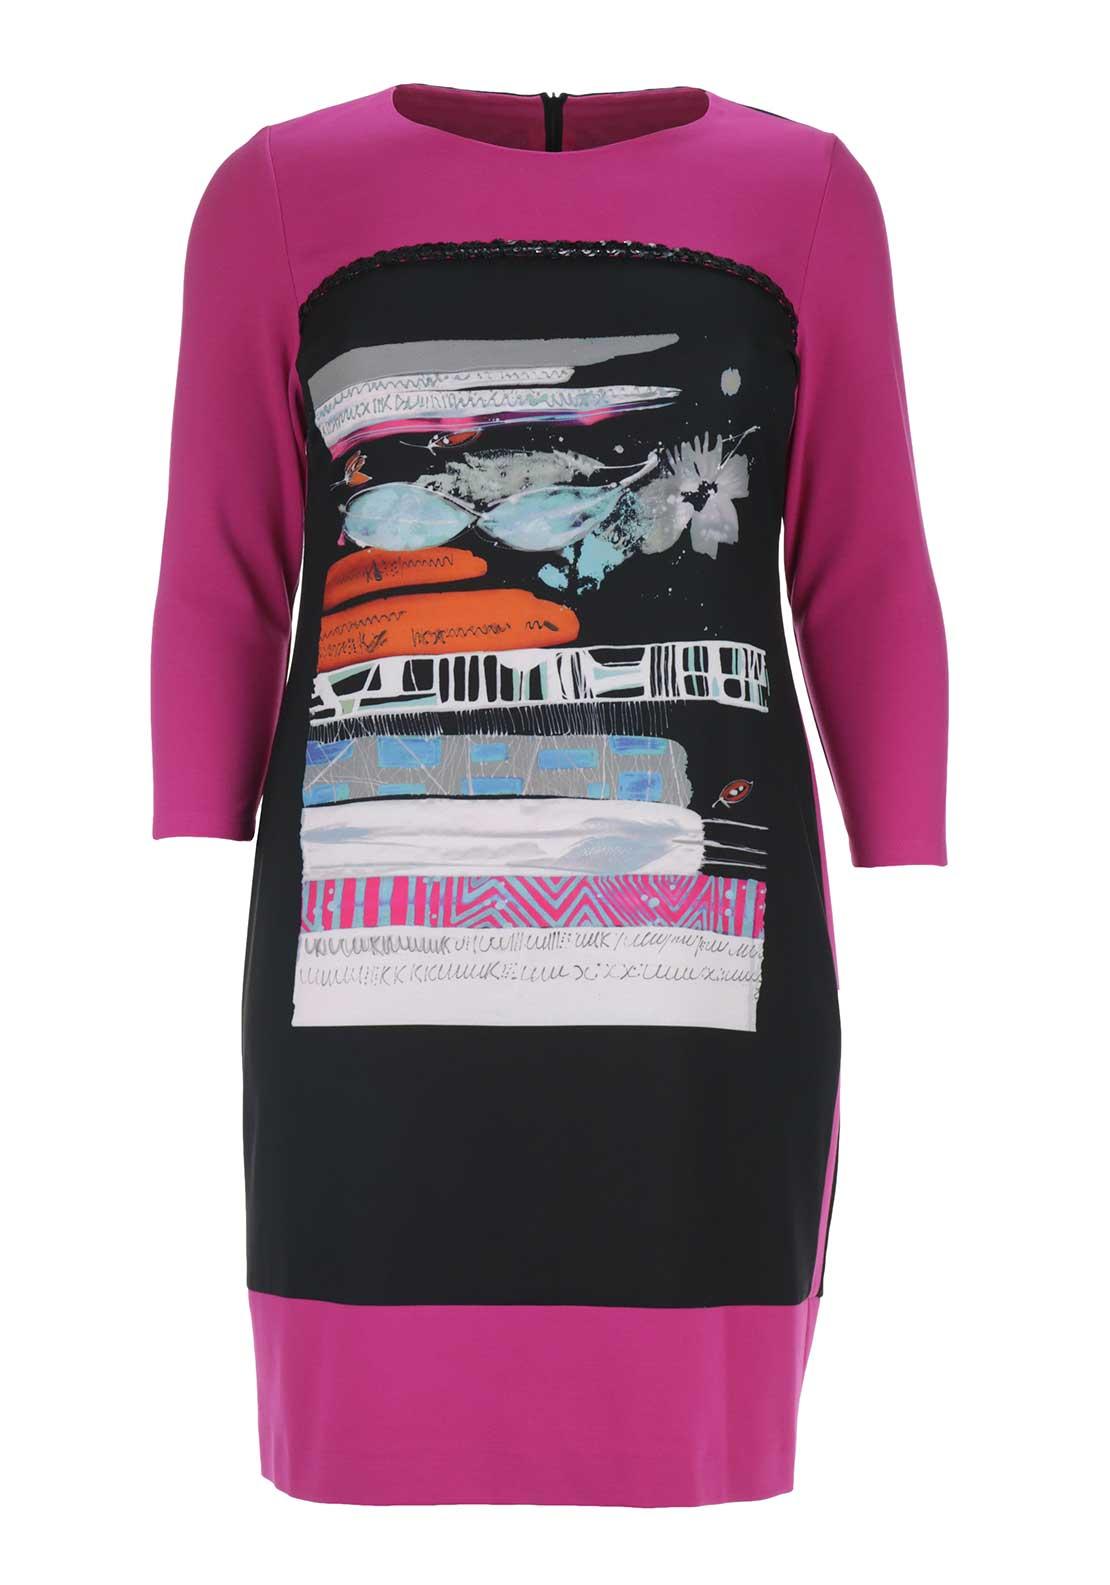 Via Veneto Graphic Print Cropped Sleeve Jersey Dress, Pink and Black